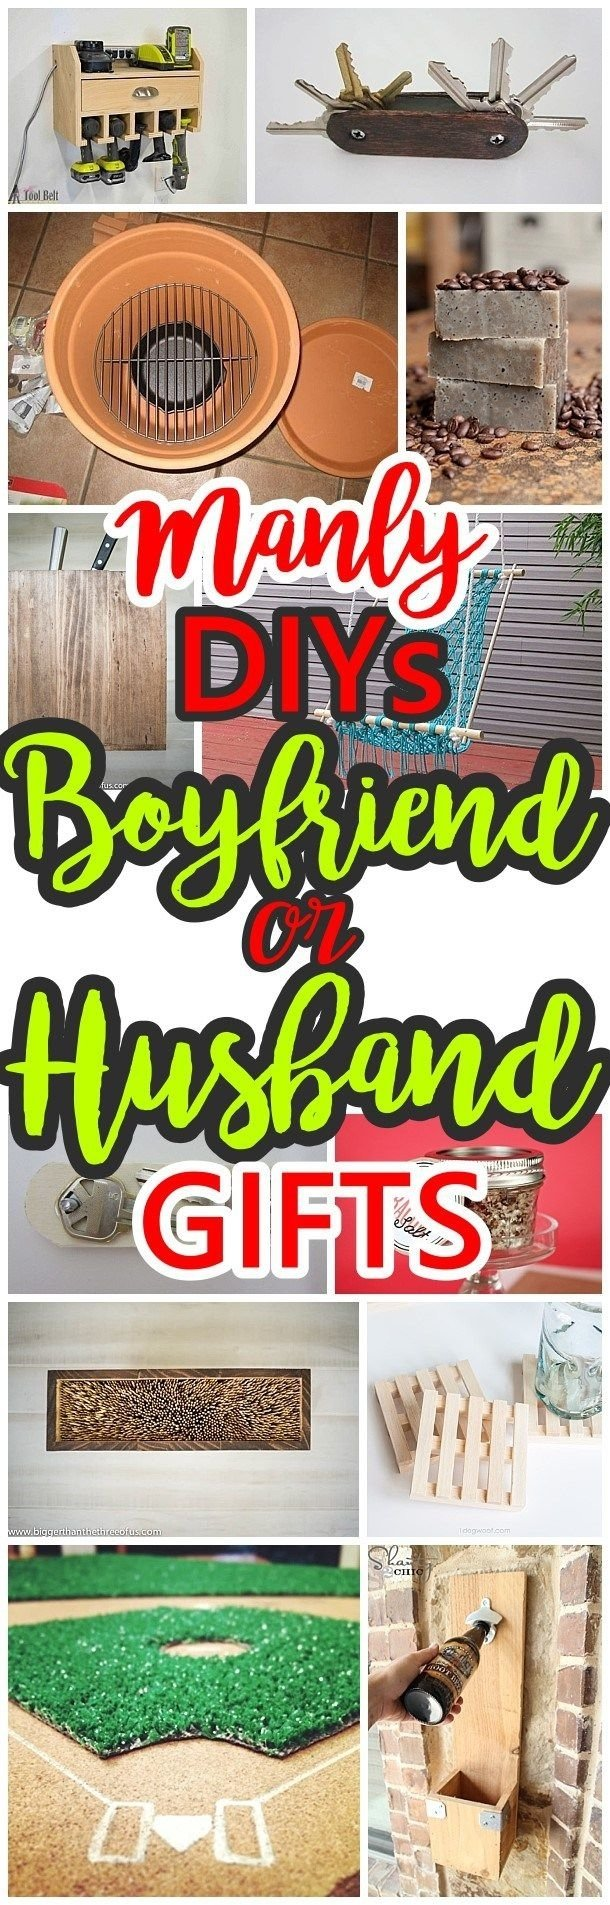 10 Ideal Christmas Gift Ideas For Brothers manly do it yourself boyfriend and husband gift ideas masculine 1 2020